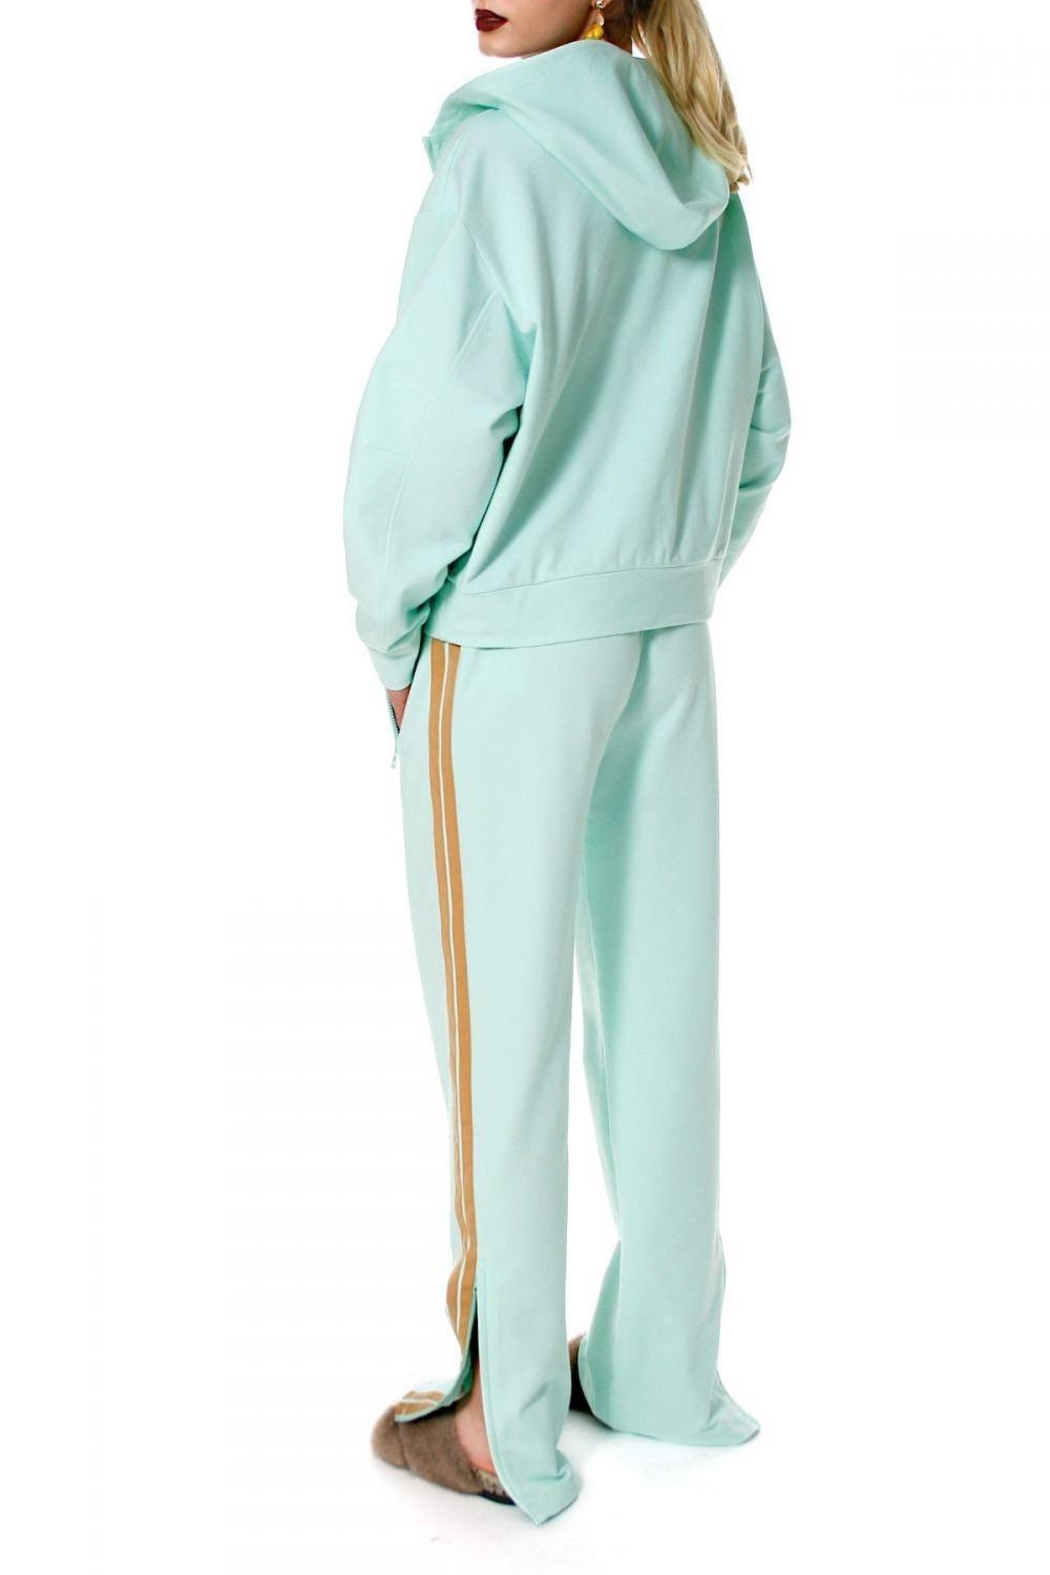 AGGI Pants Edie Frosty Mint - Main Image